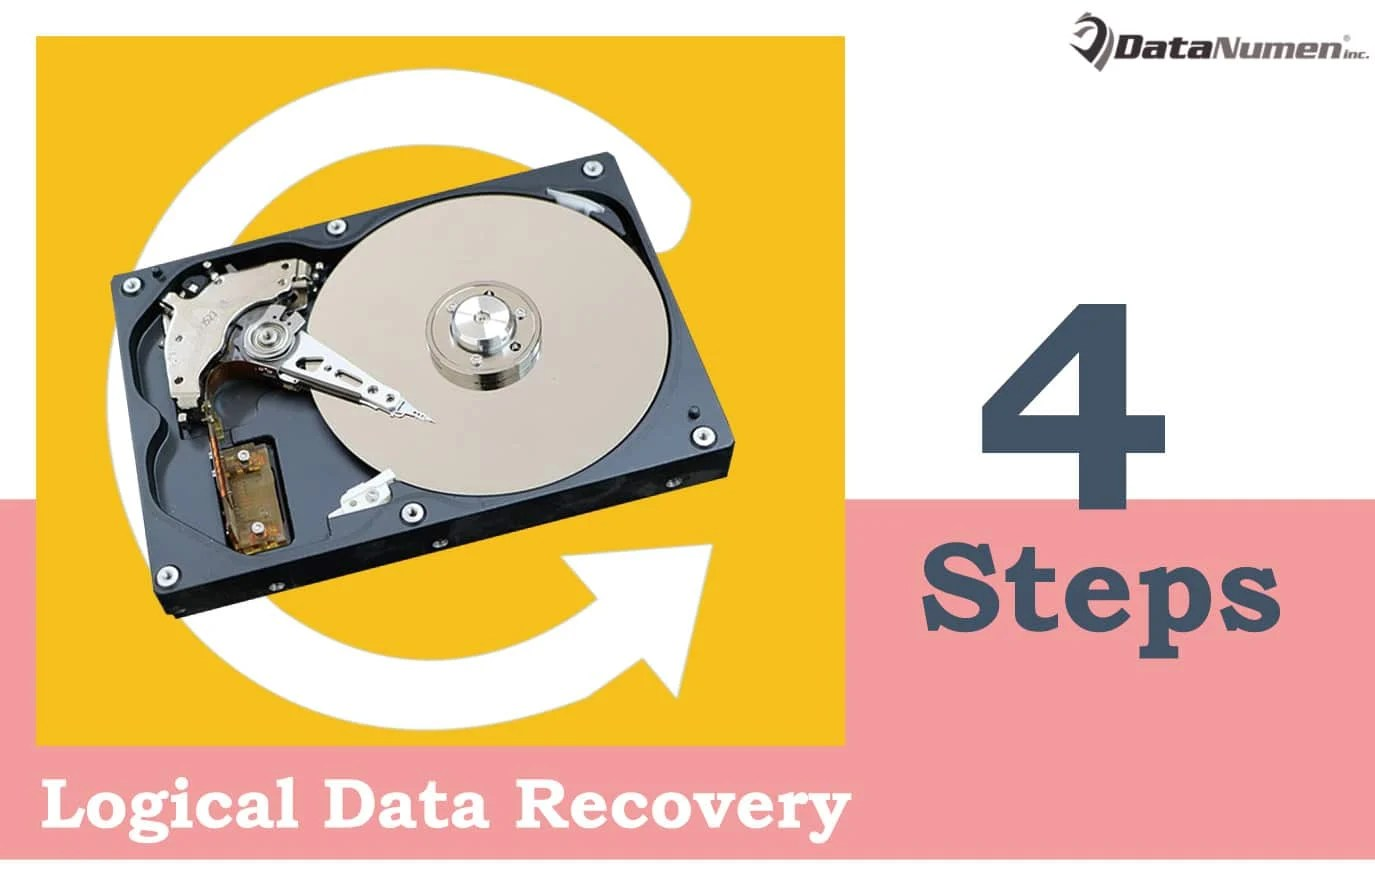 4 Vital Steps in Logical Data Recovery on Hard Drive